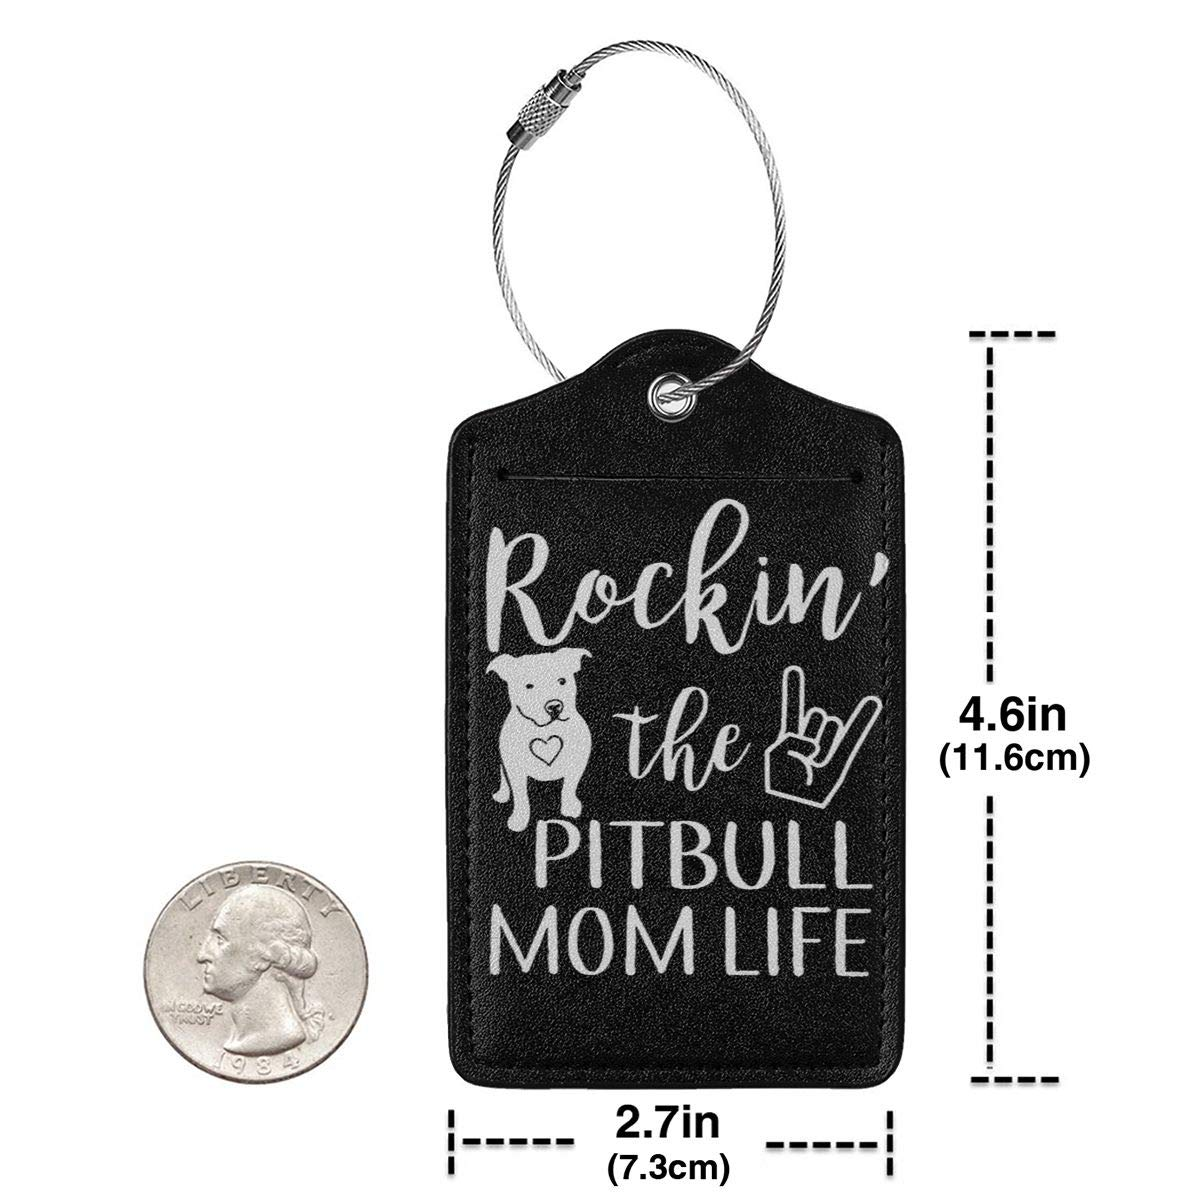 Rockin The Pitbull Mom Life Leather Luggage Tag Travel ID Label For Baggage Suitcase